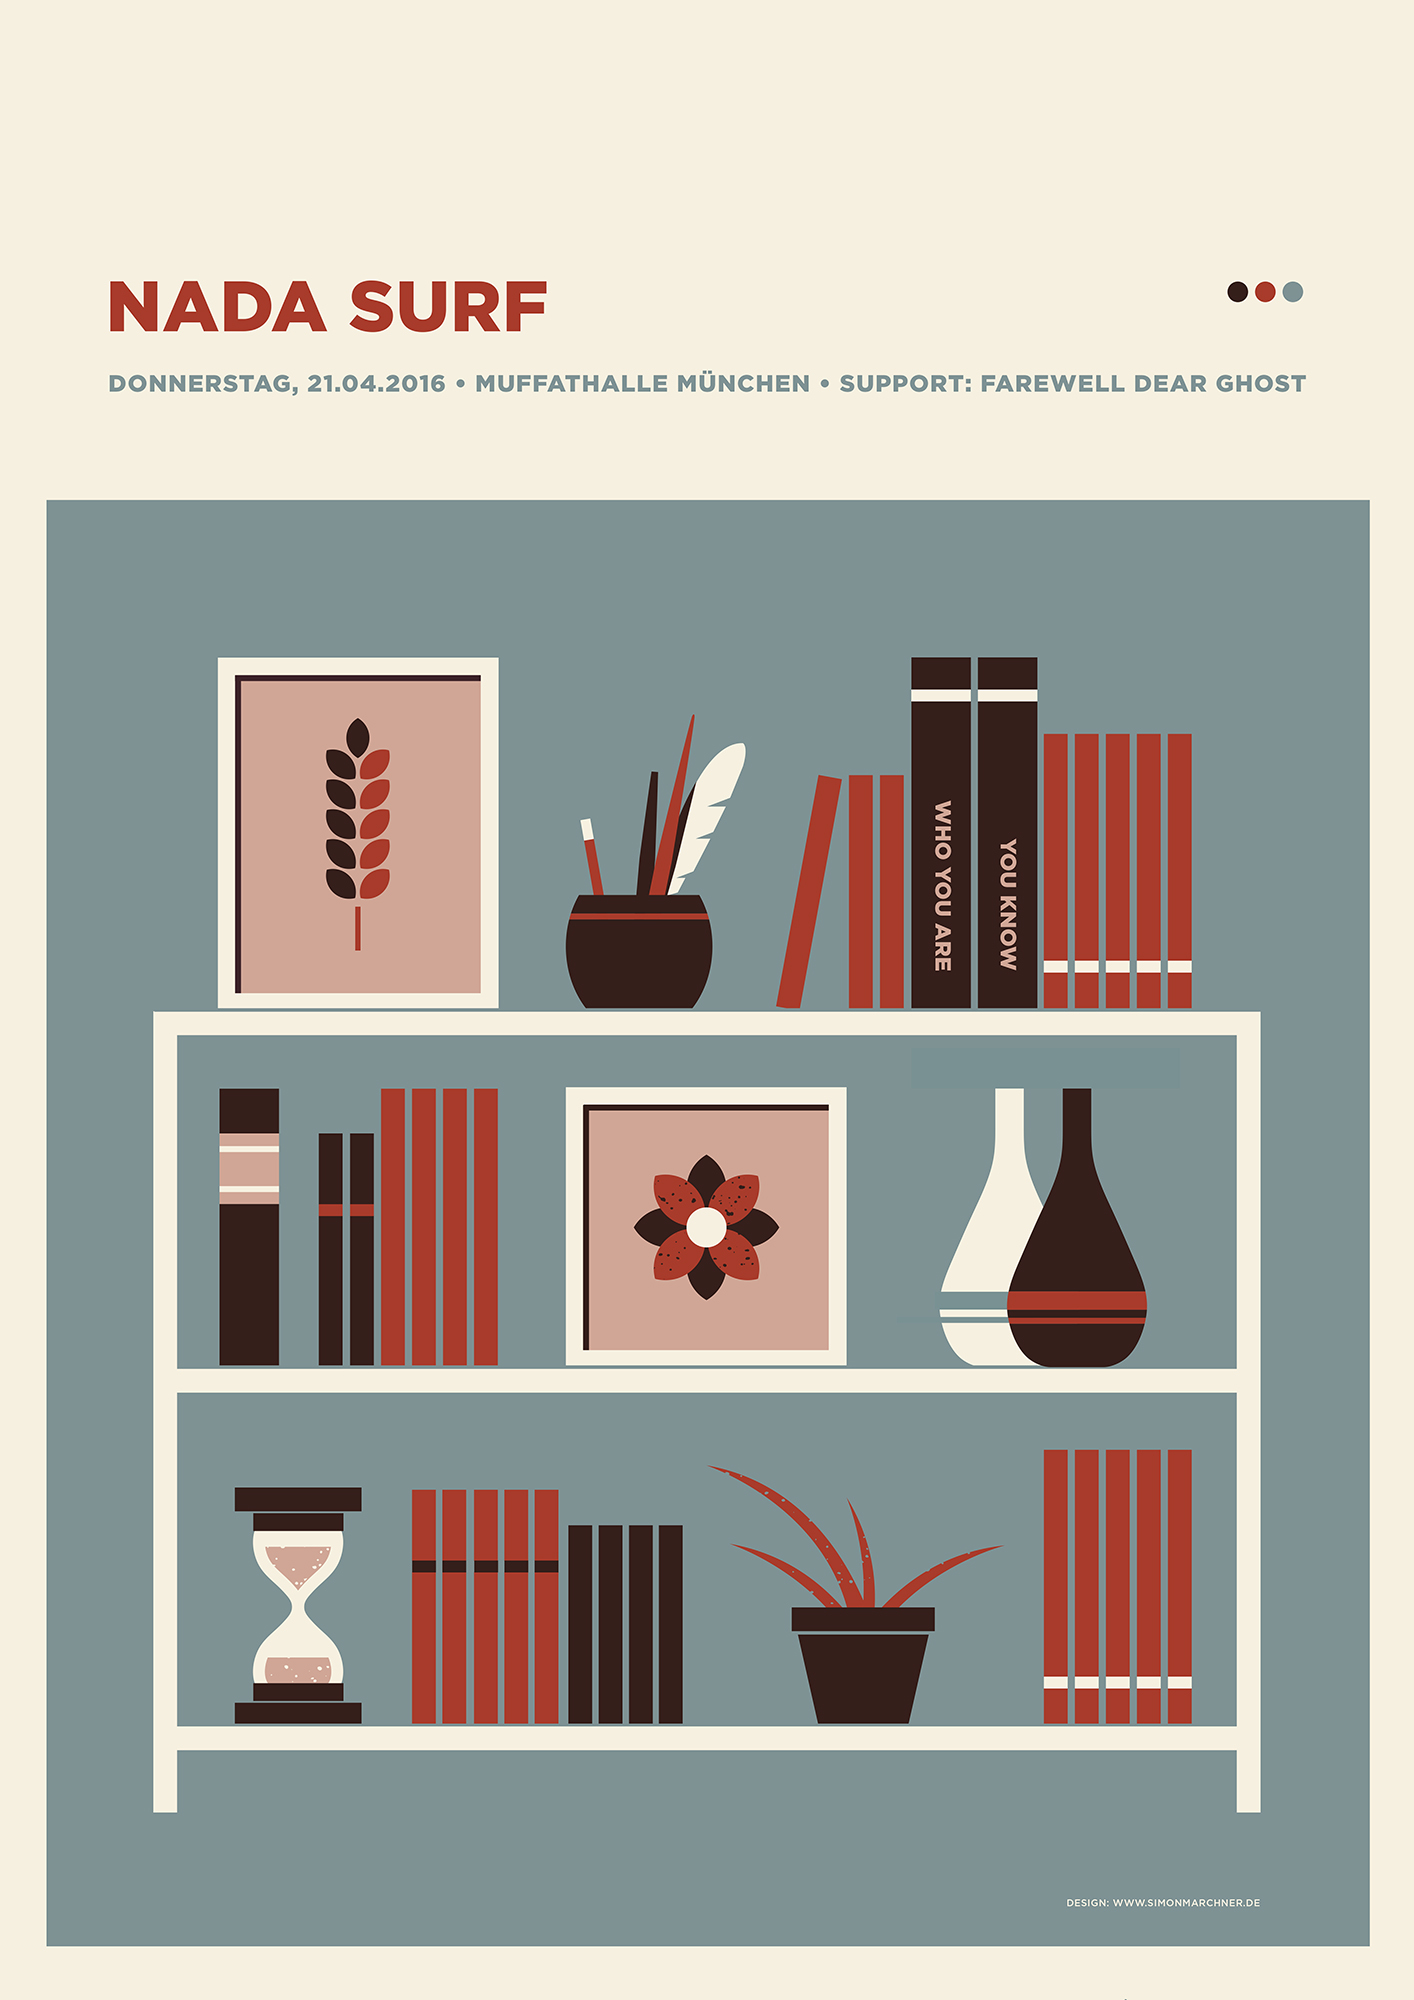 """Nada Surf - Muffathalle München 2016"" by Simon Marchner.  42 x 59.4cm 4-color Screenprint.  Ed of 60.  €25 ($28)"